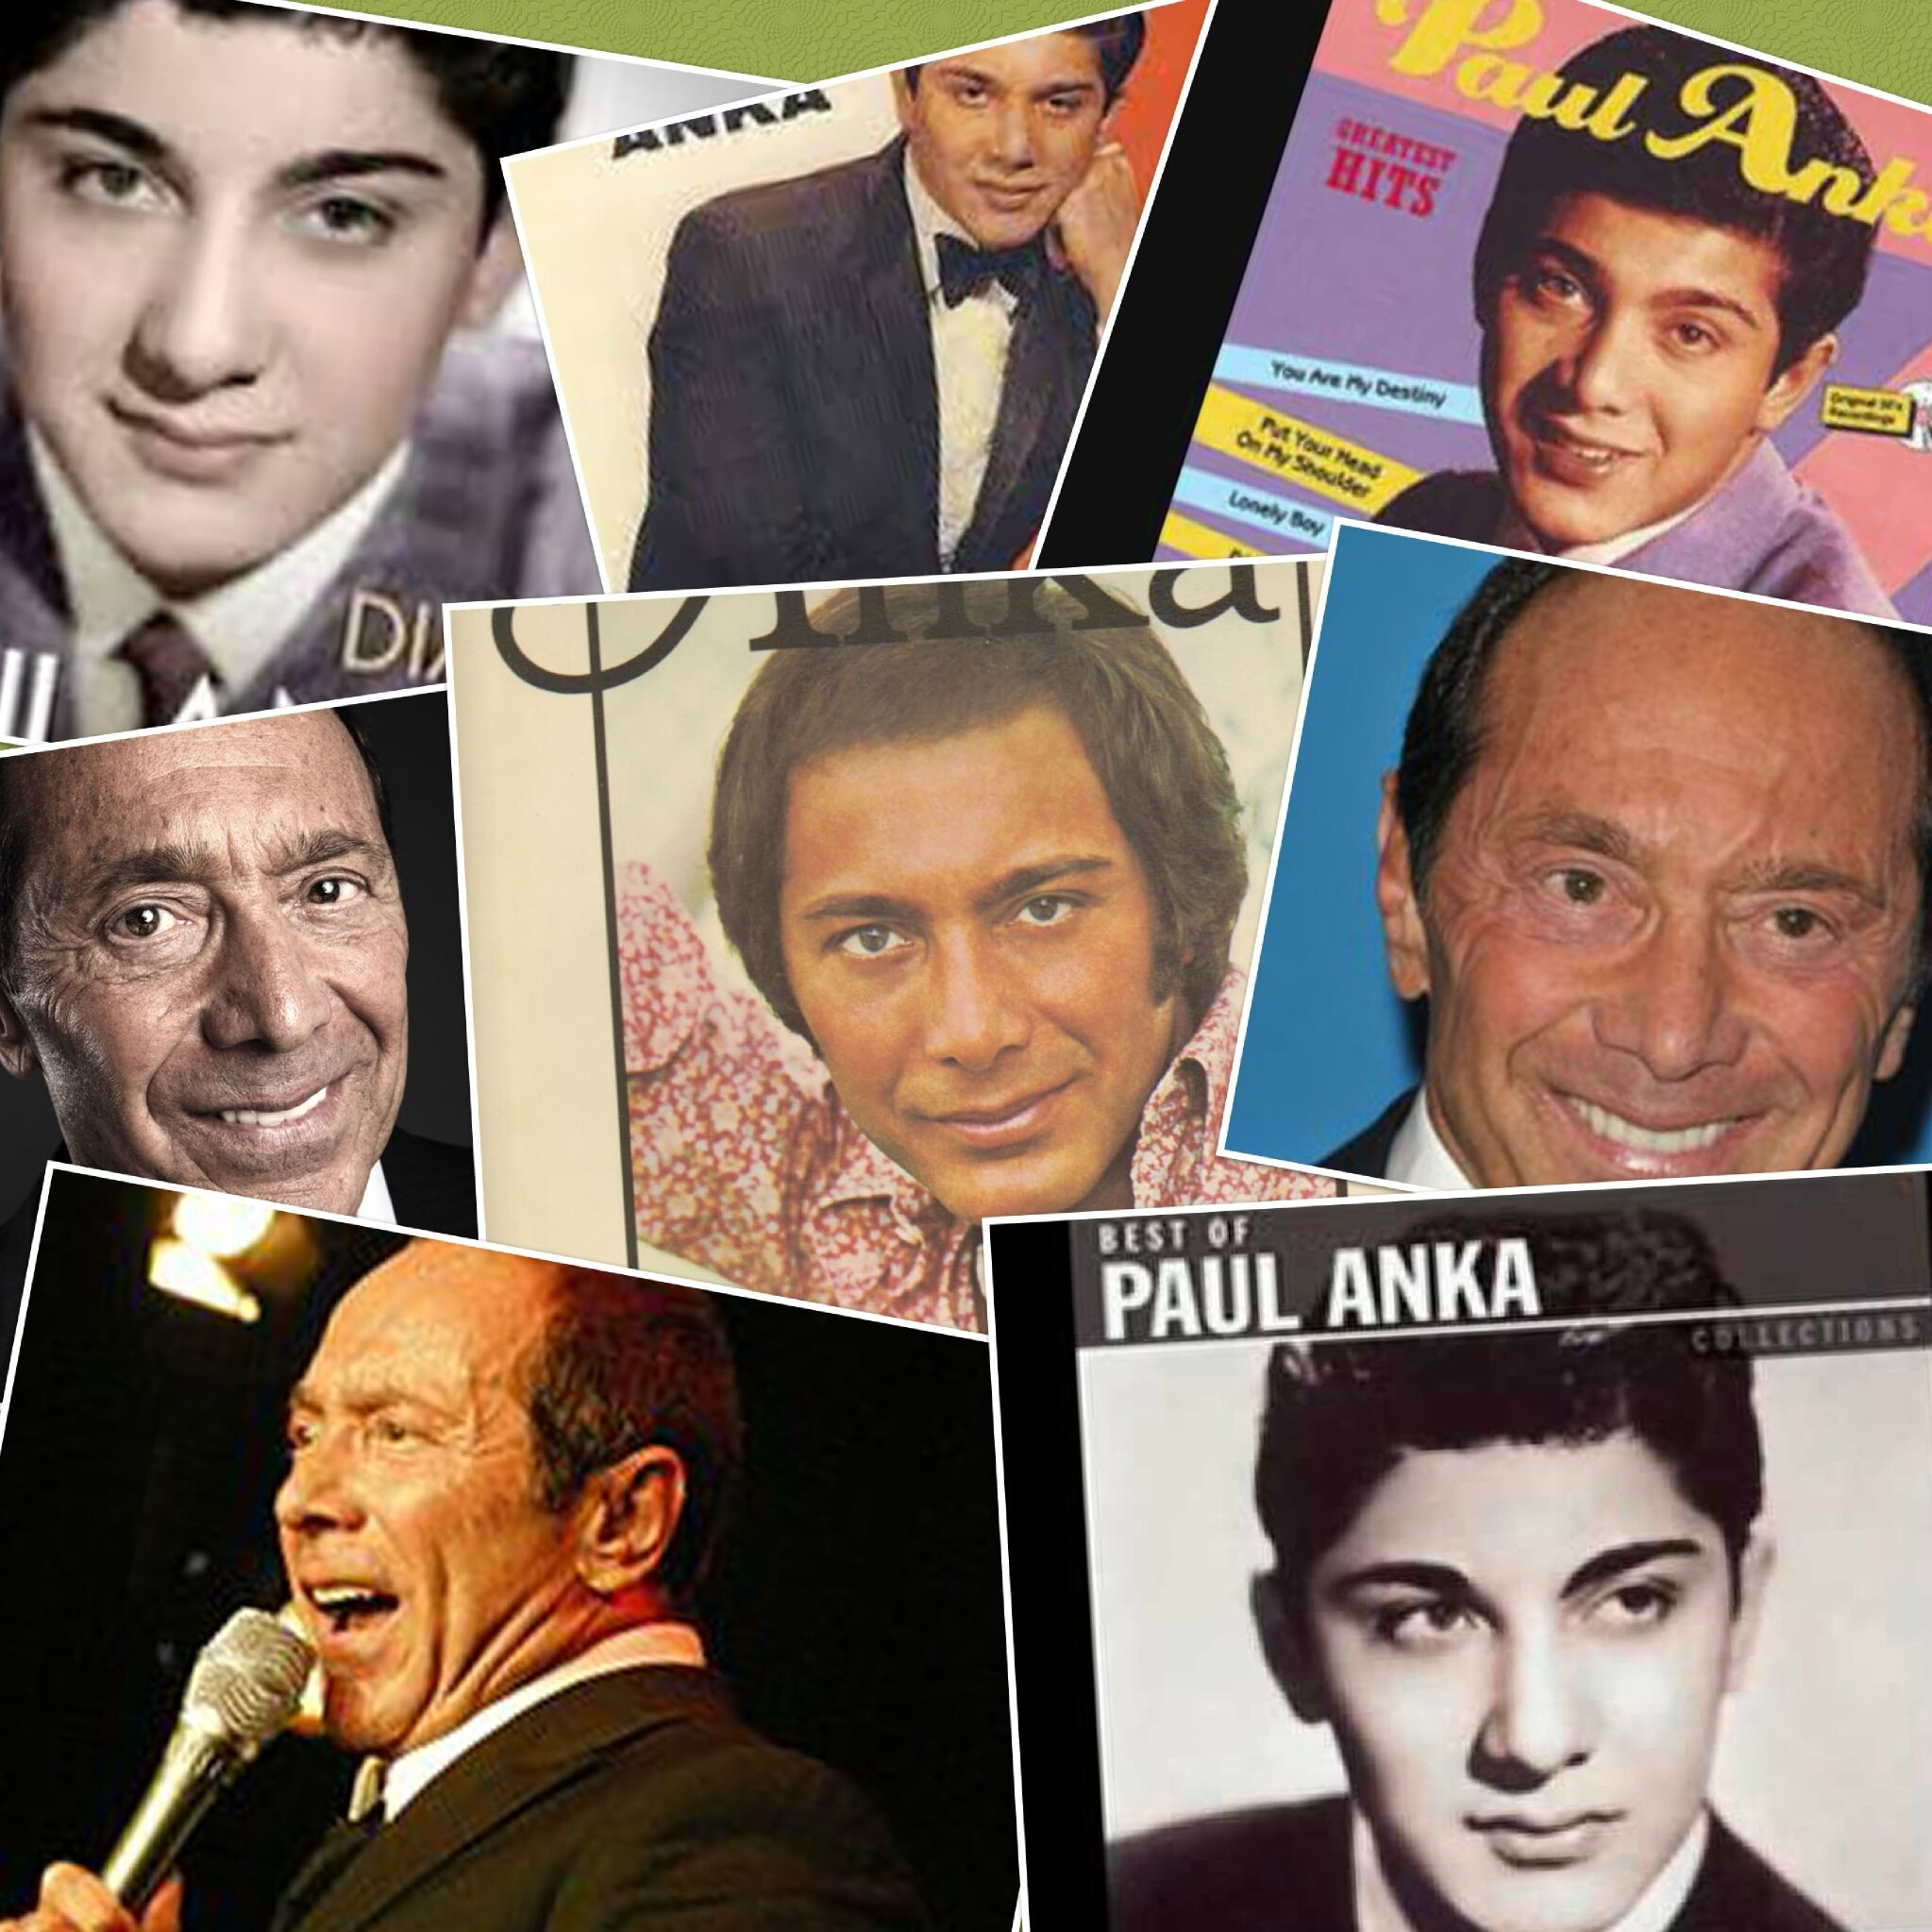 RS2 PAUL ANKA